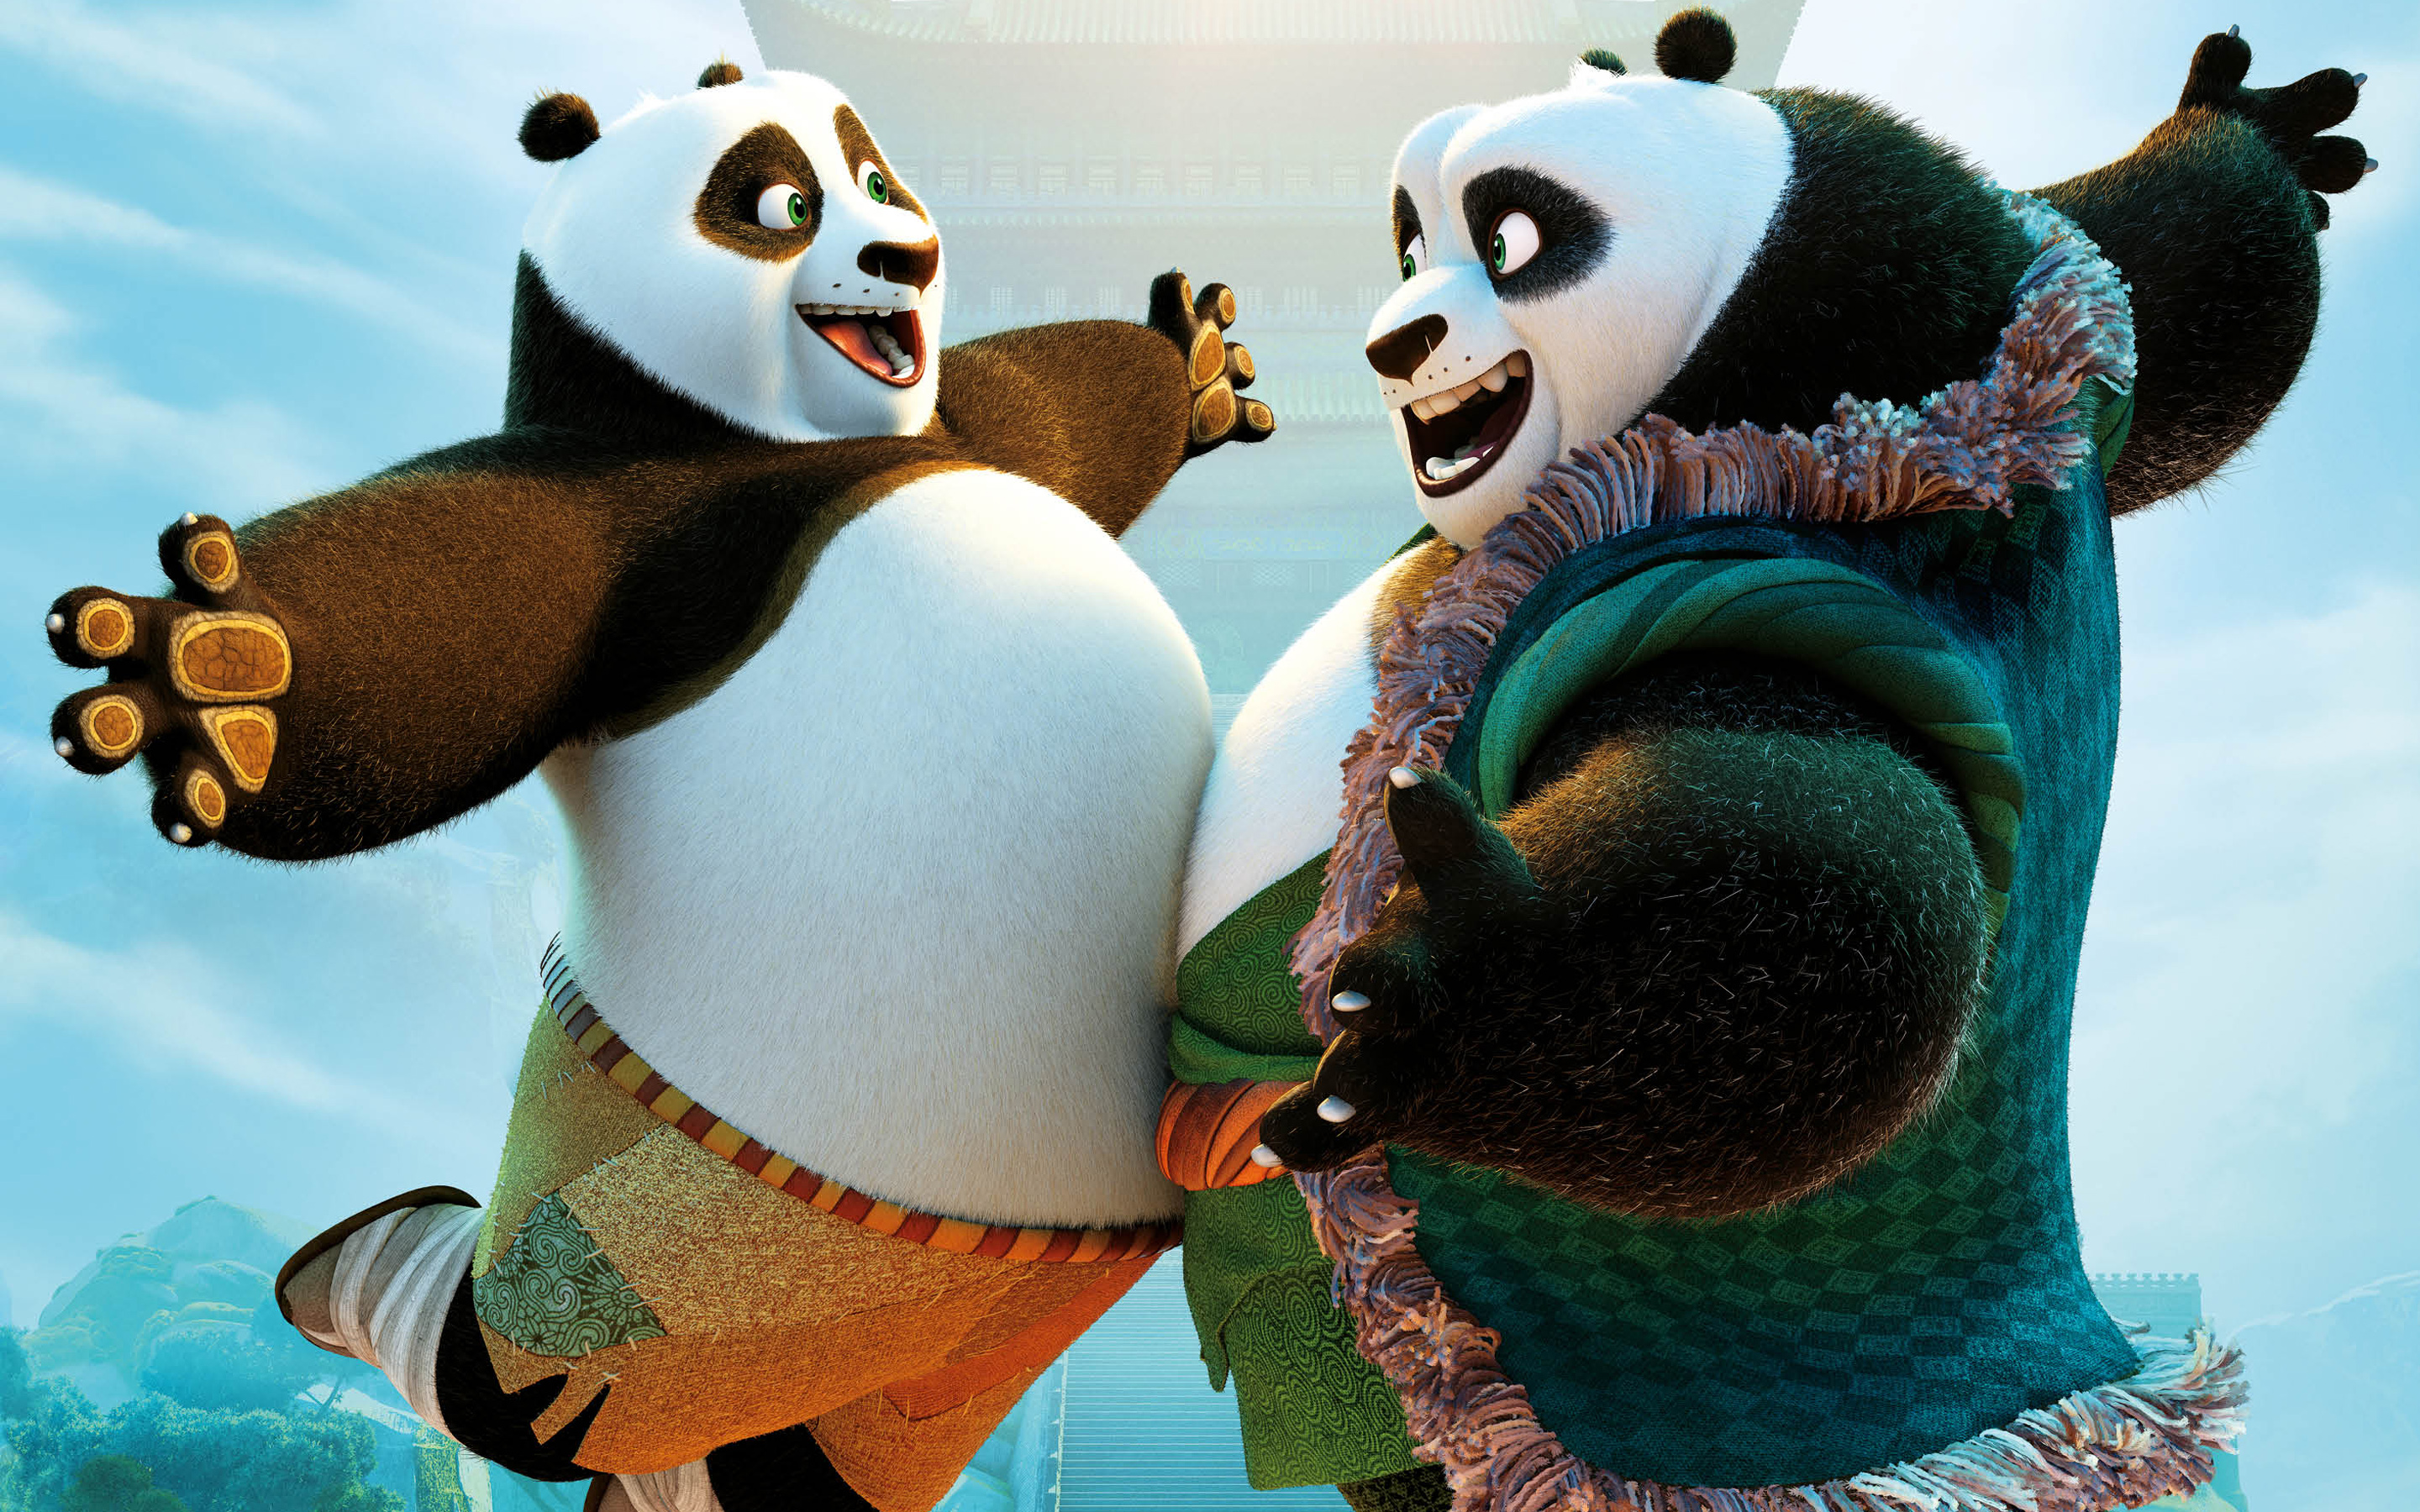 Kung fu panda iphone wallpaper - Kung Fu Panda Wallpapers Hd Images Pictures